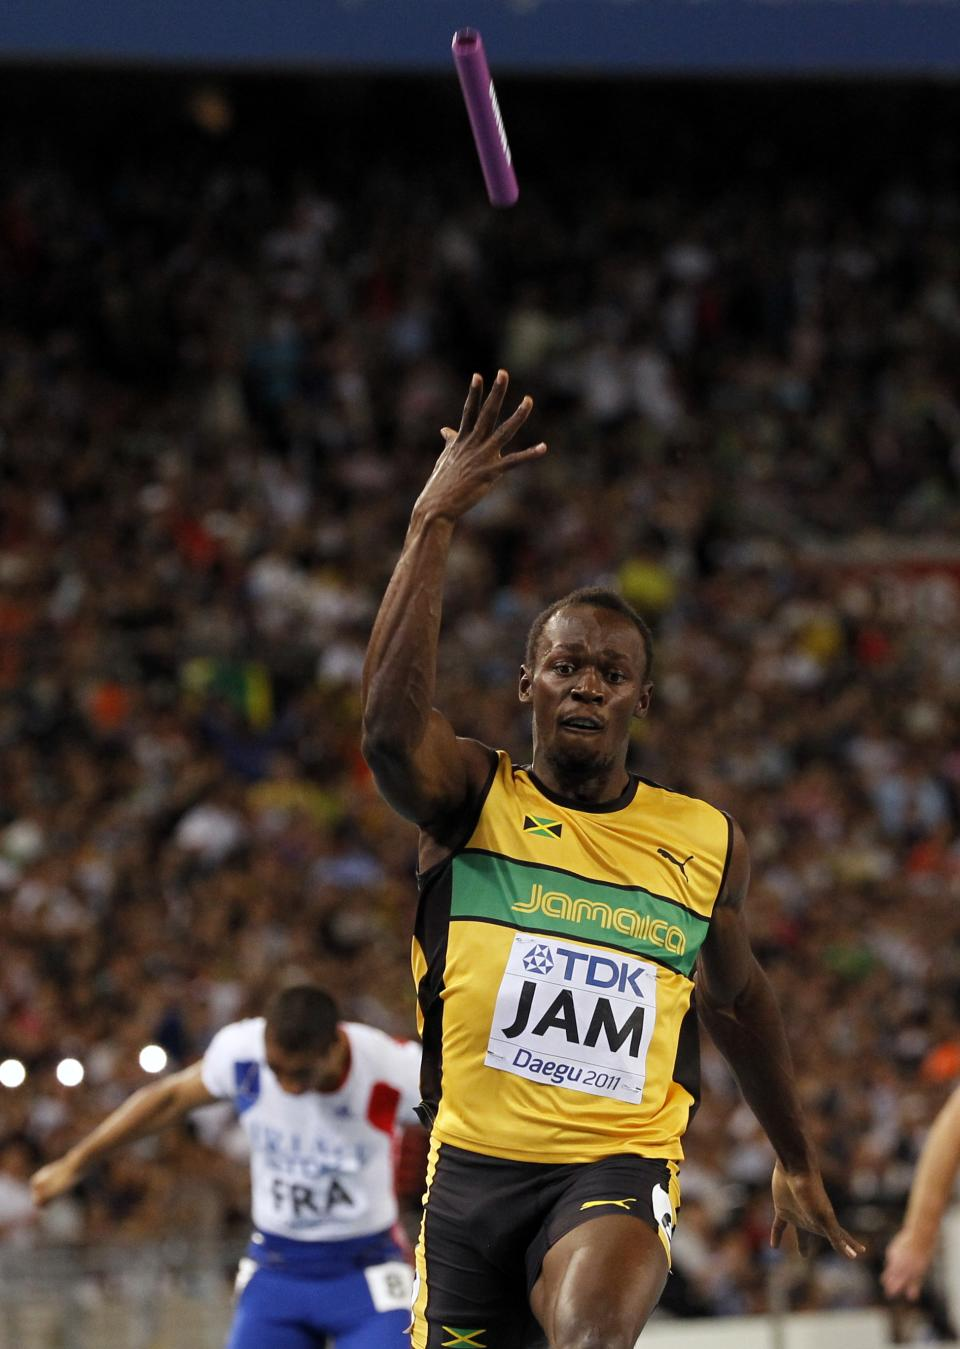 Jamaica's Usain Bolt throws the baton into the air as he crosses the finish line to win the Men's 4x100 Relay final and break a world record at the World Athletics Championships in Daegu, South Korea, Sunday, Sept. 4, 2011. (AP Photo/Anja Niedringhaus)